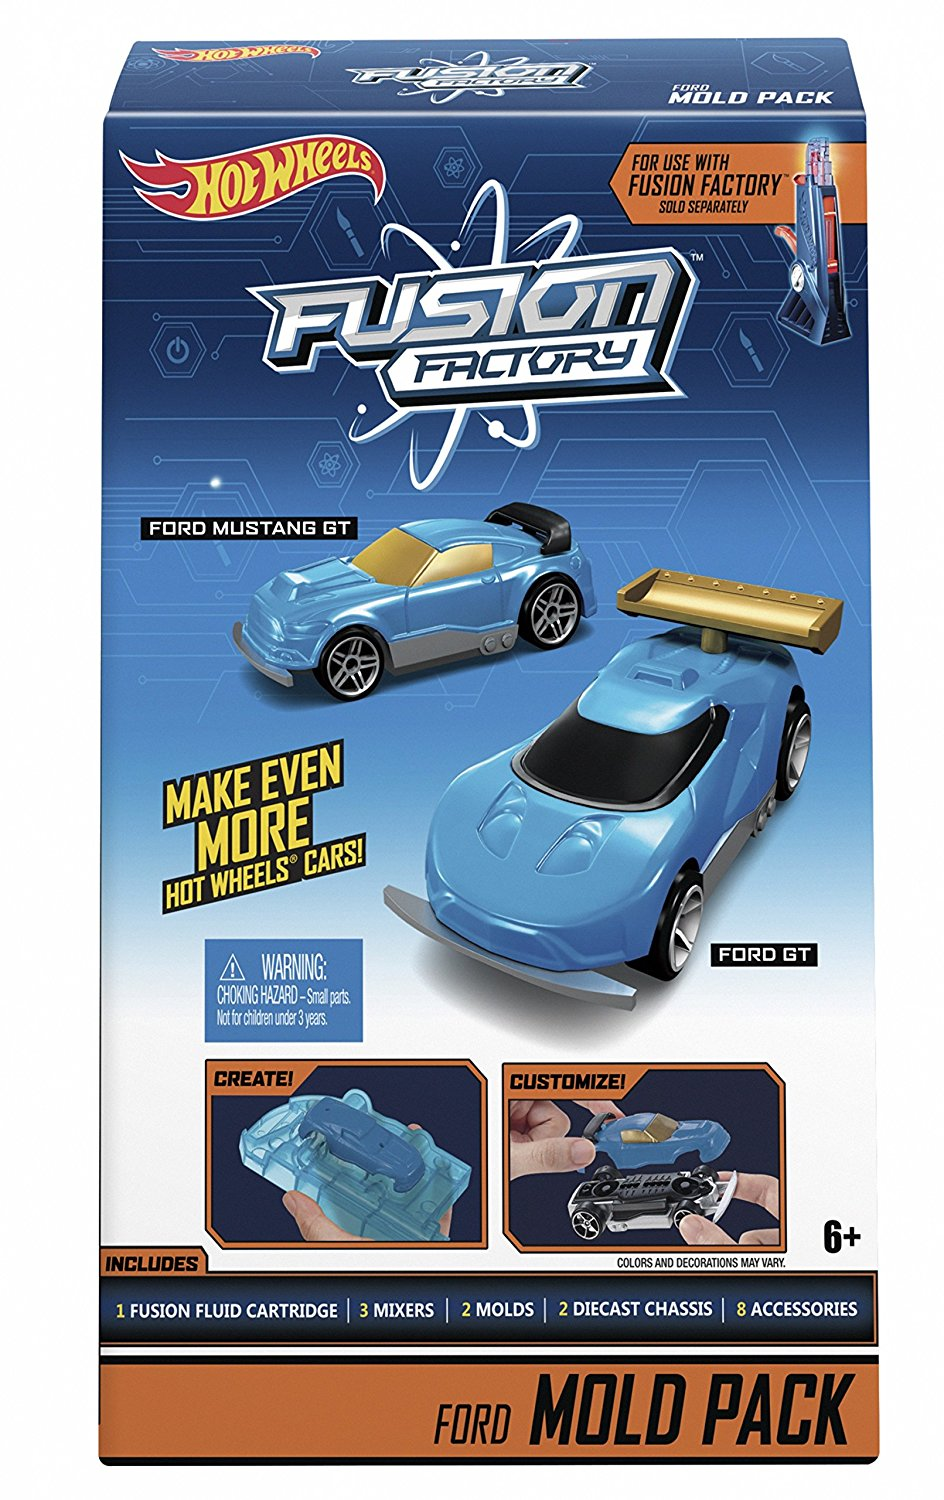 RED HOT WHEELS FUSION FACTORY COLOR REFILL KIT